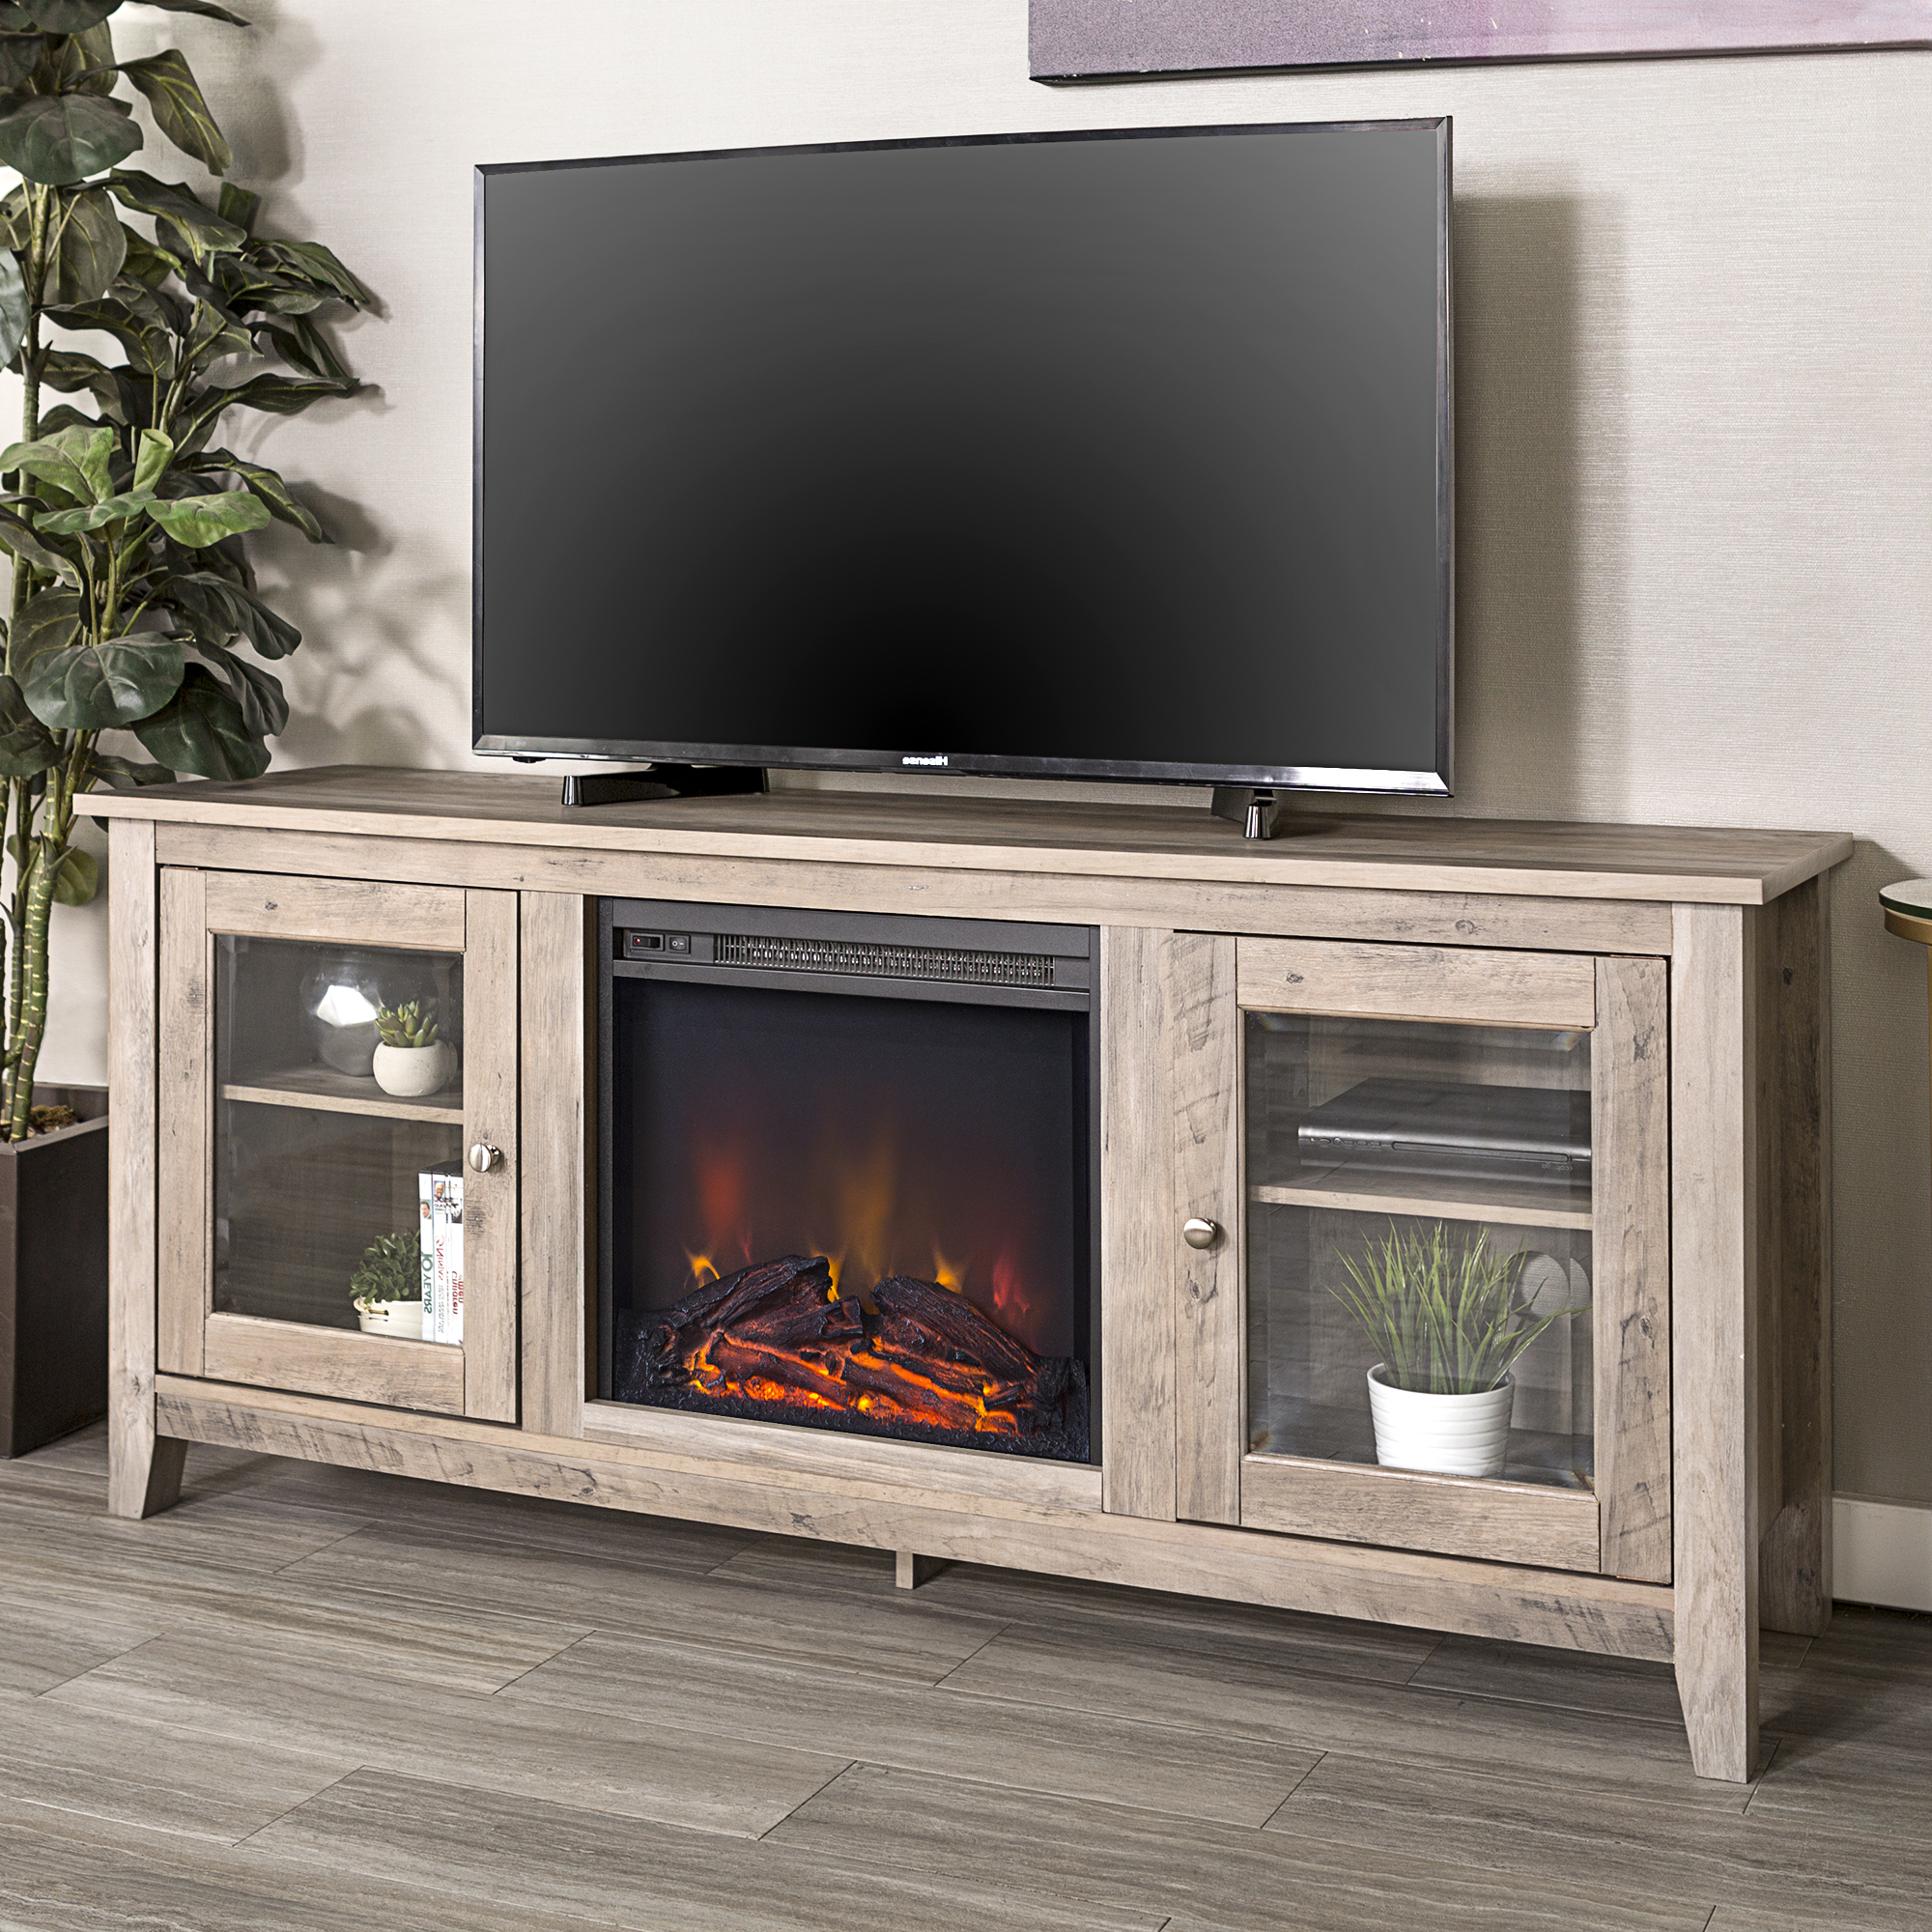 """Walkeredison Furniture 58"""" Wood Media Tv Stand Console With Preferred Delphi Grey Tv Stands (View 8 of 25)"""